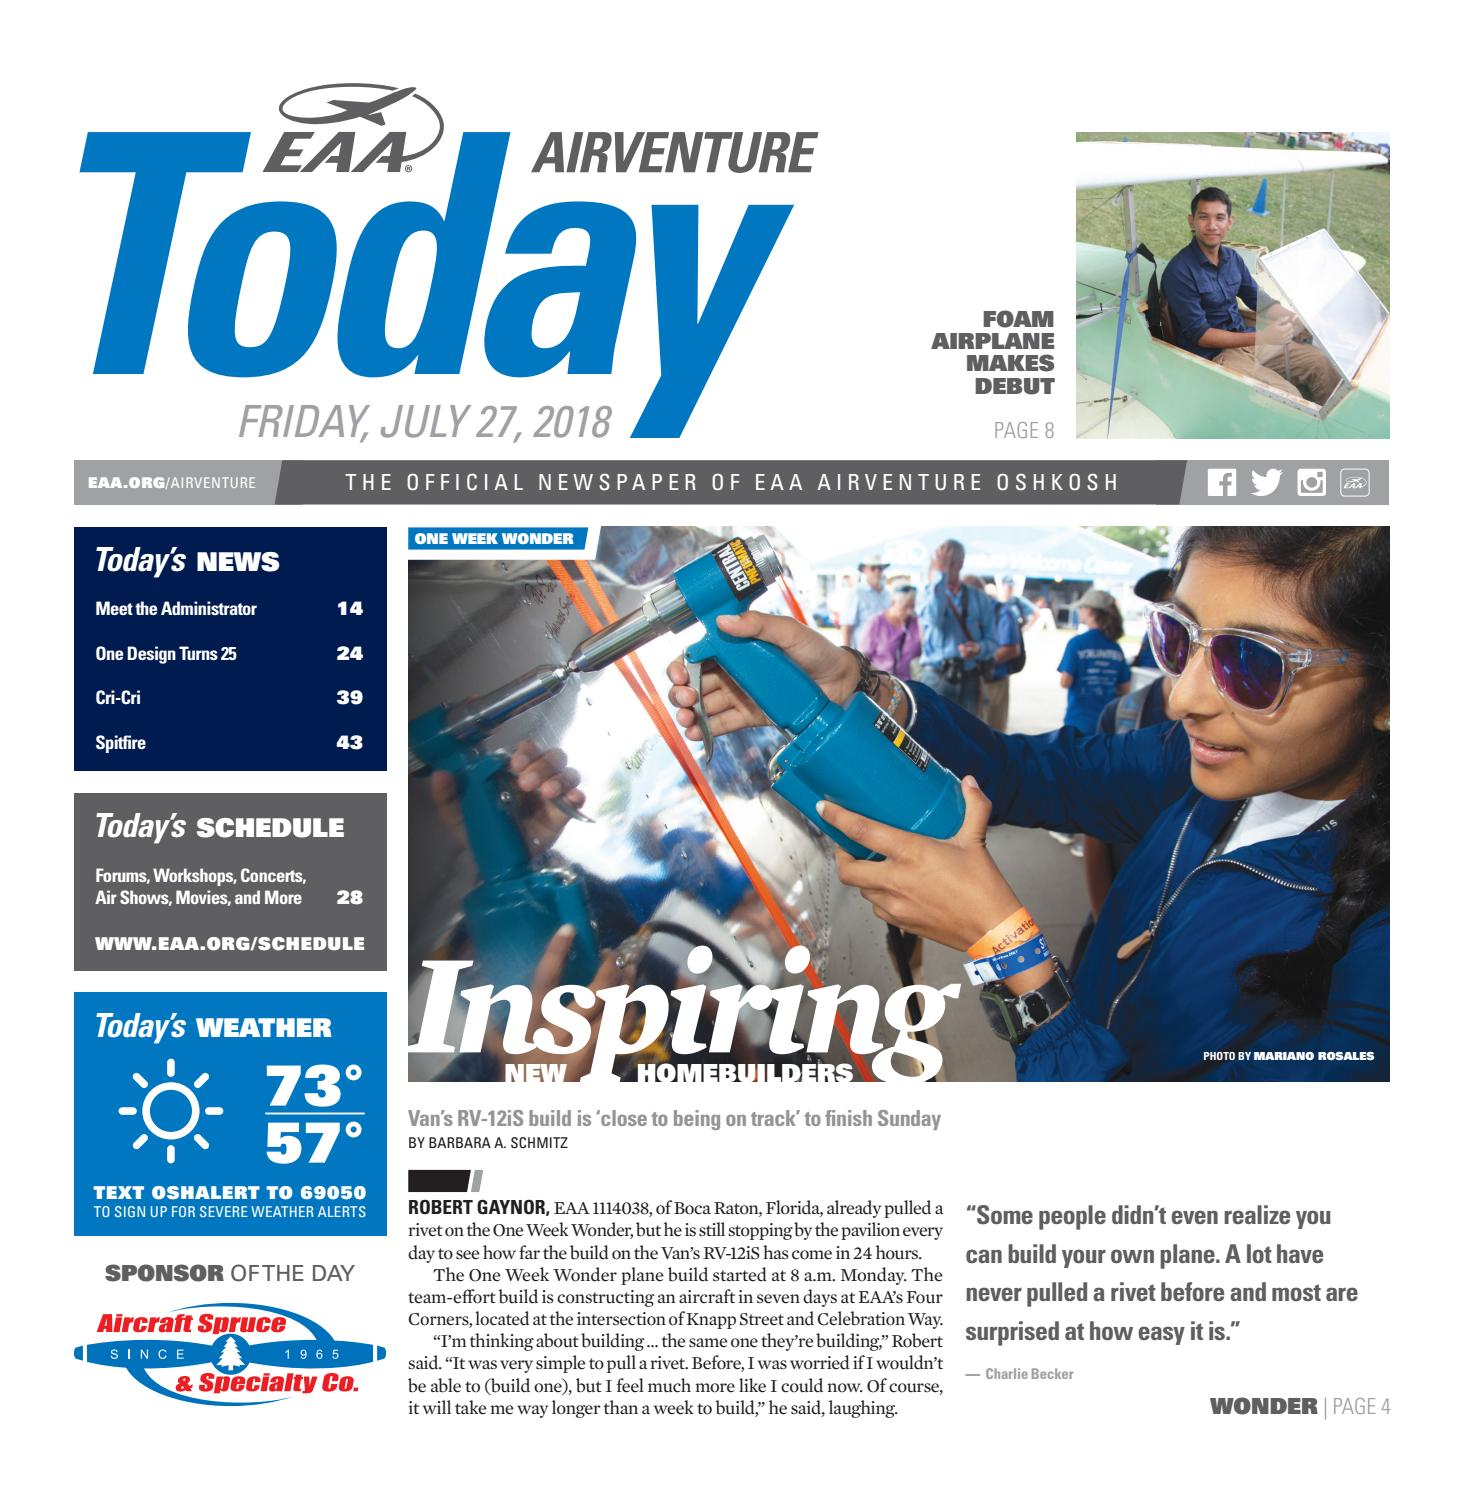 EAA AirVenture Today - Friday, July 27, 2018 by EAA: Experimental